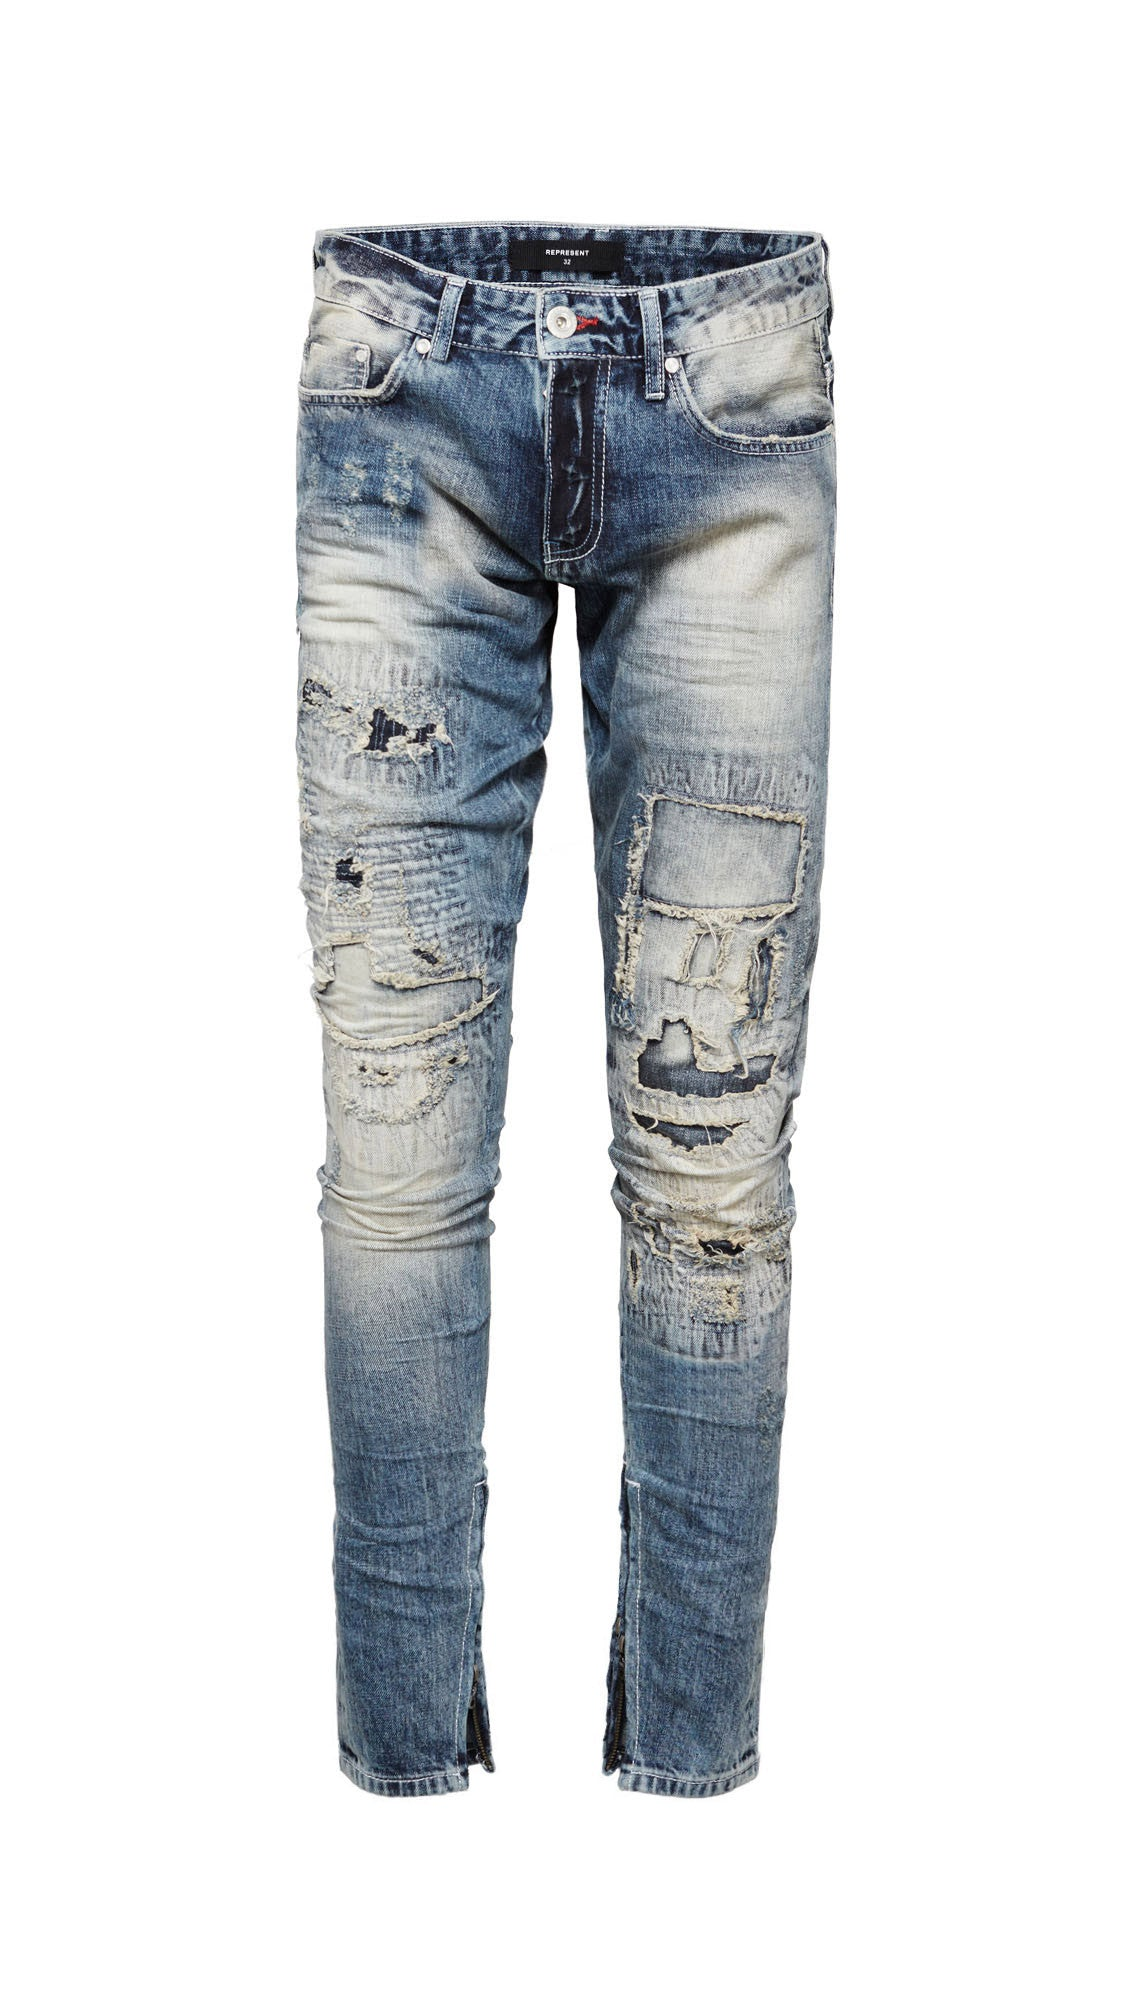 Repairer Selvedge Denim - Random Blue